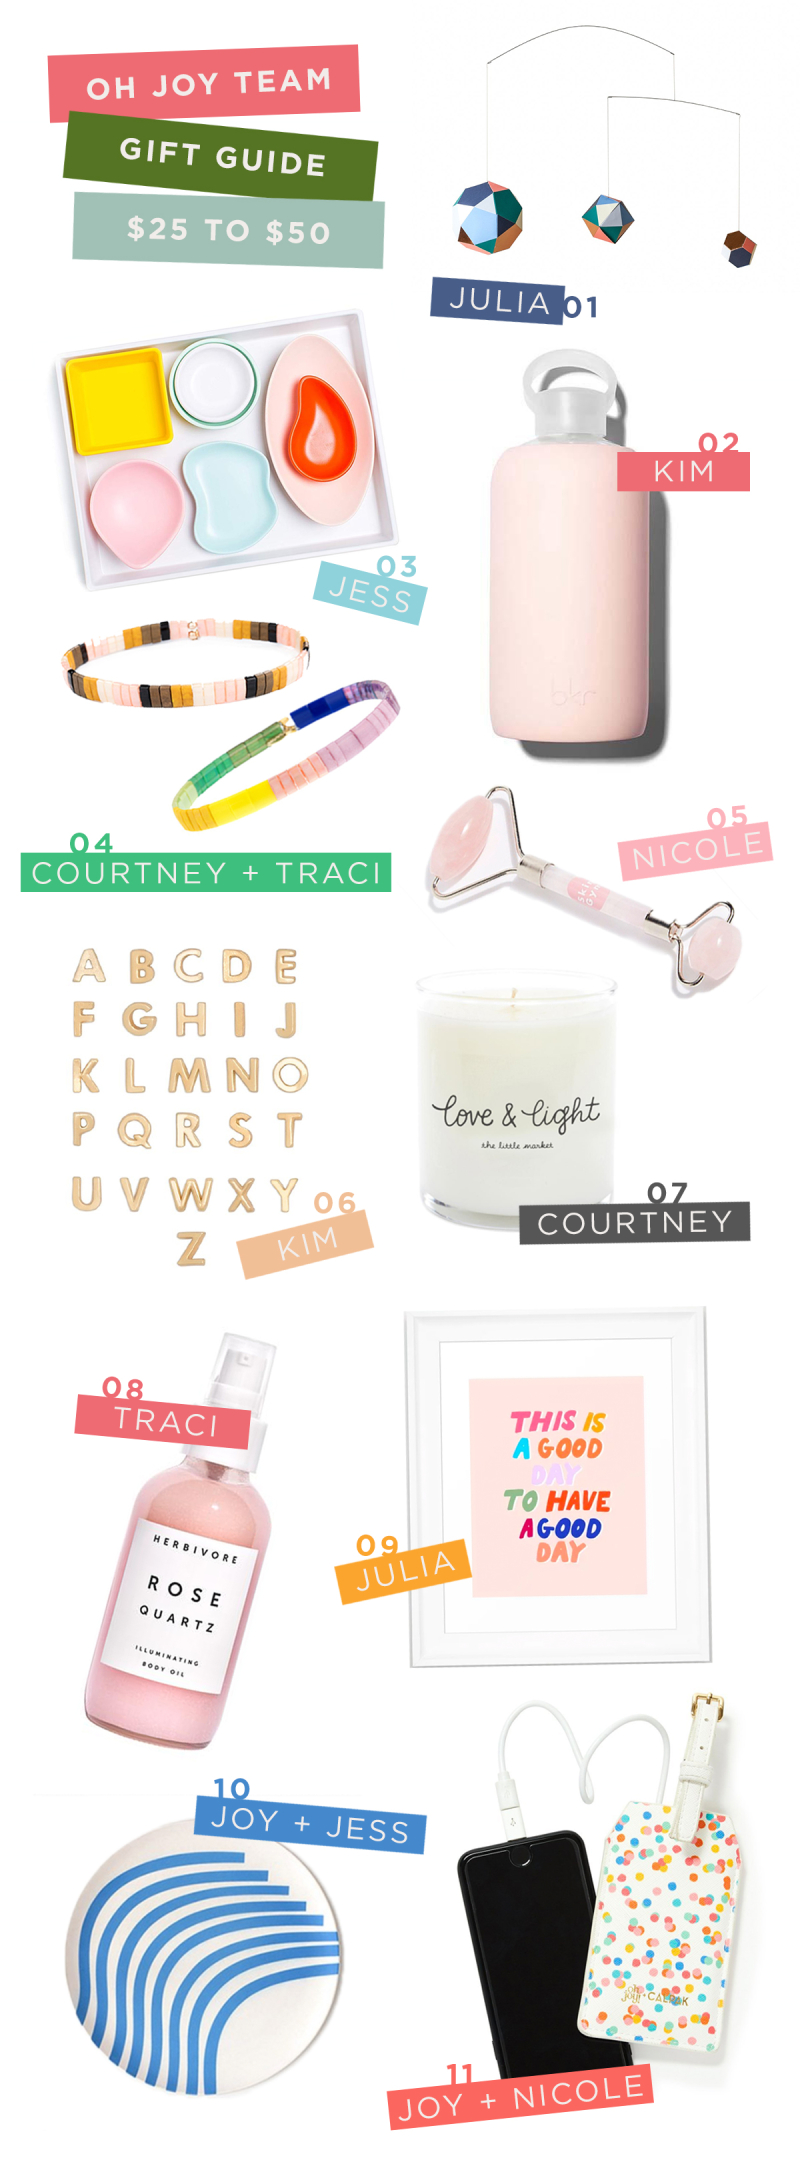 Oh Joy! Team Gift Guide $25 to $50: Joy, Jess, Julia, Kim, Nicole, Traci, Courtney / via Oh Joy!